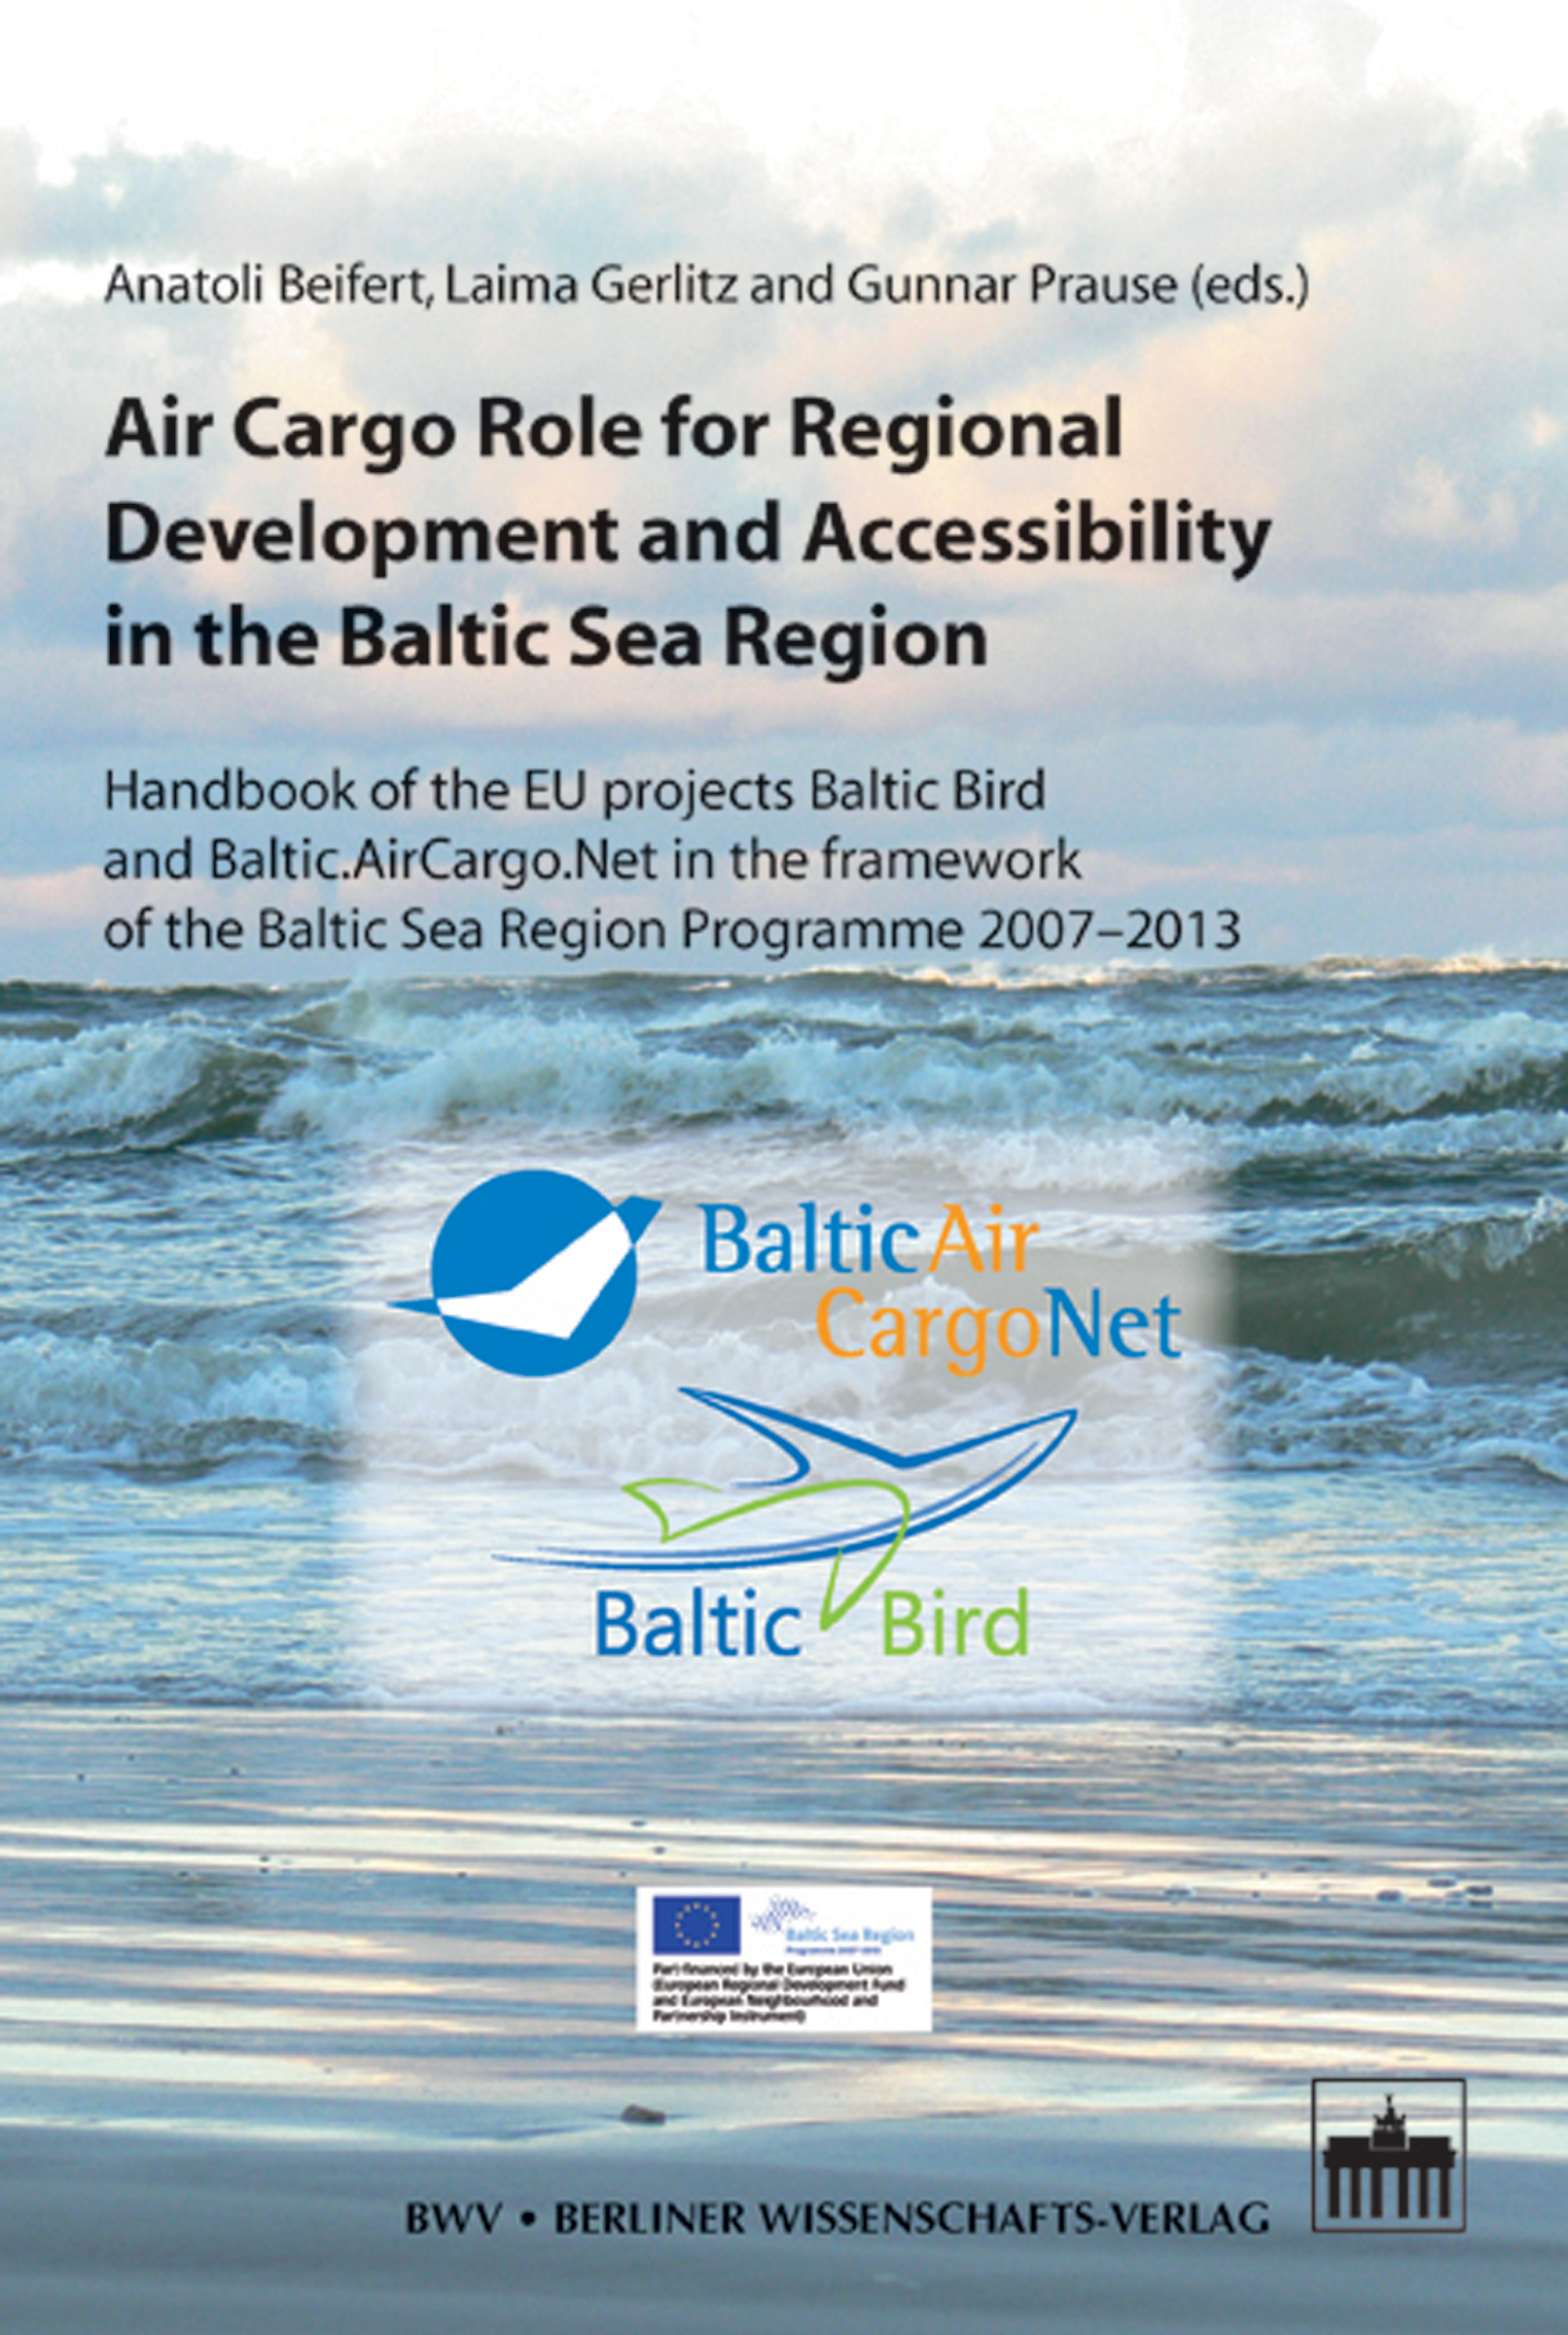 Air Cargo Role for Regional Development and Accessibility in the Baltic Sea Region